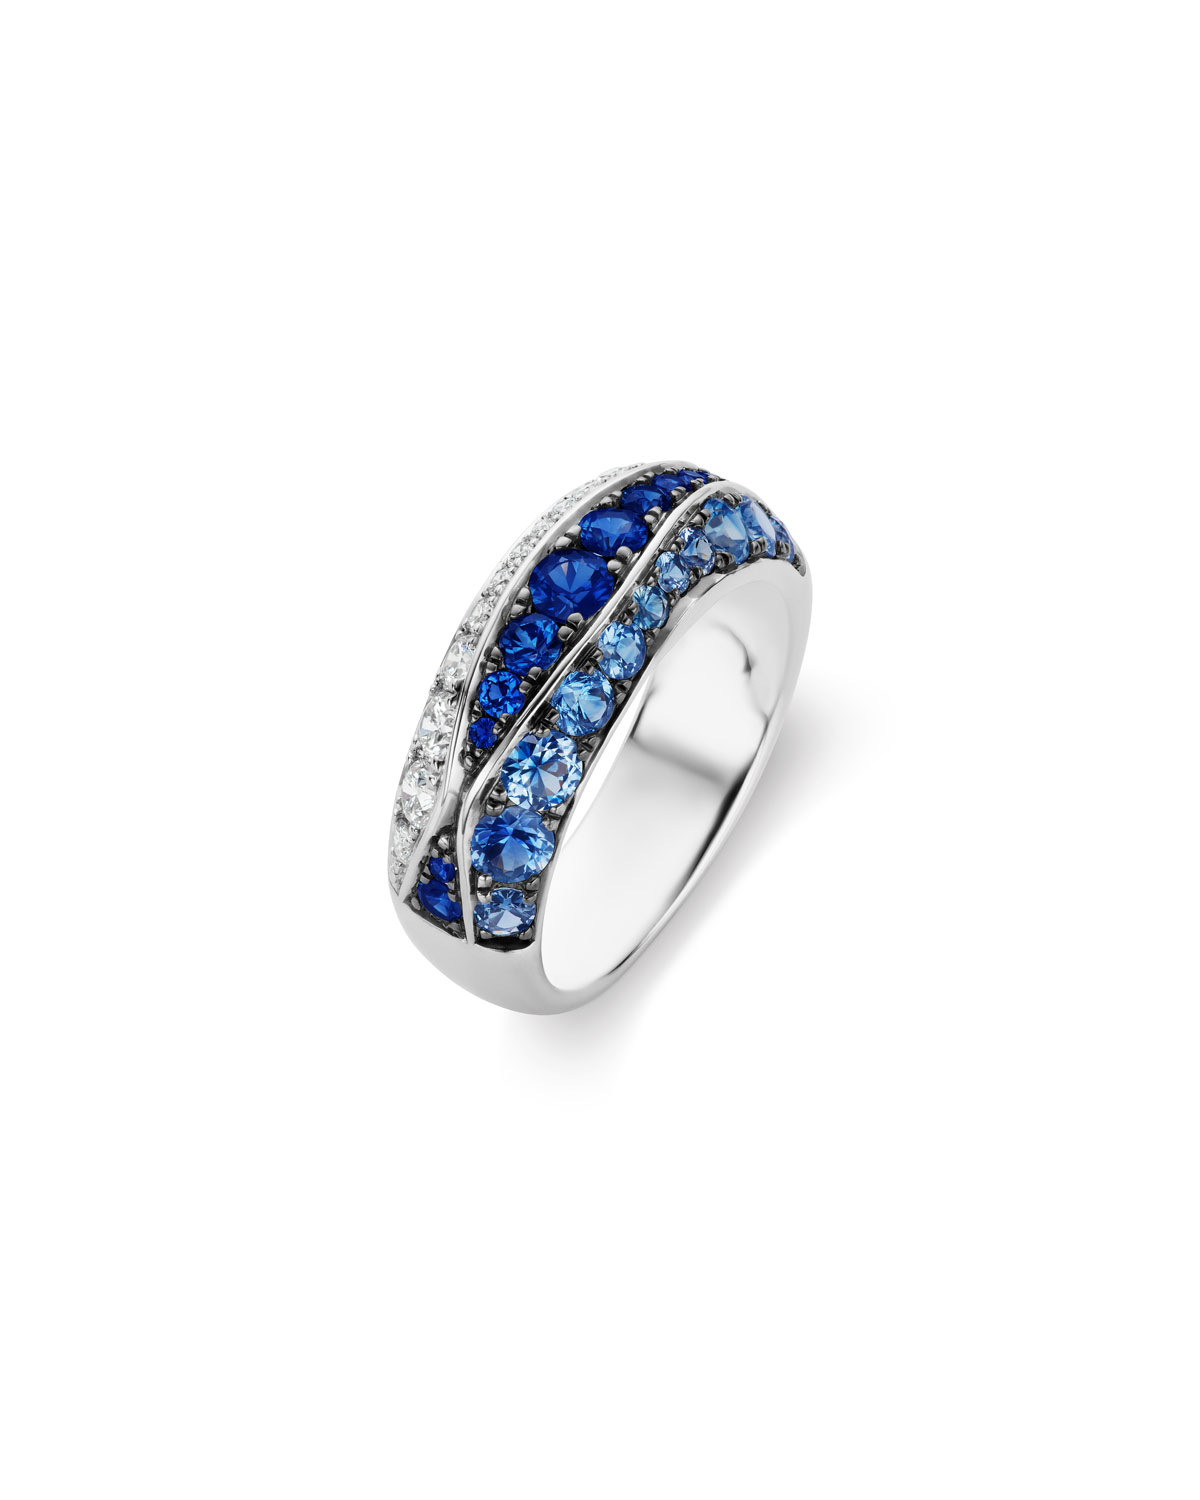 MARIA CANALE 18K White Gold Sapphire & Diamond Ring